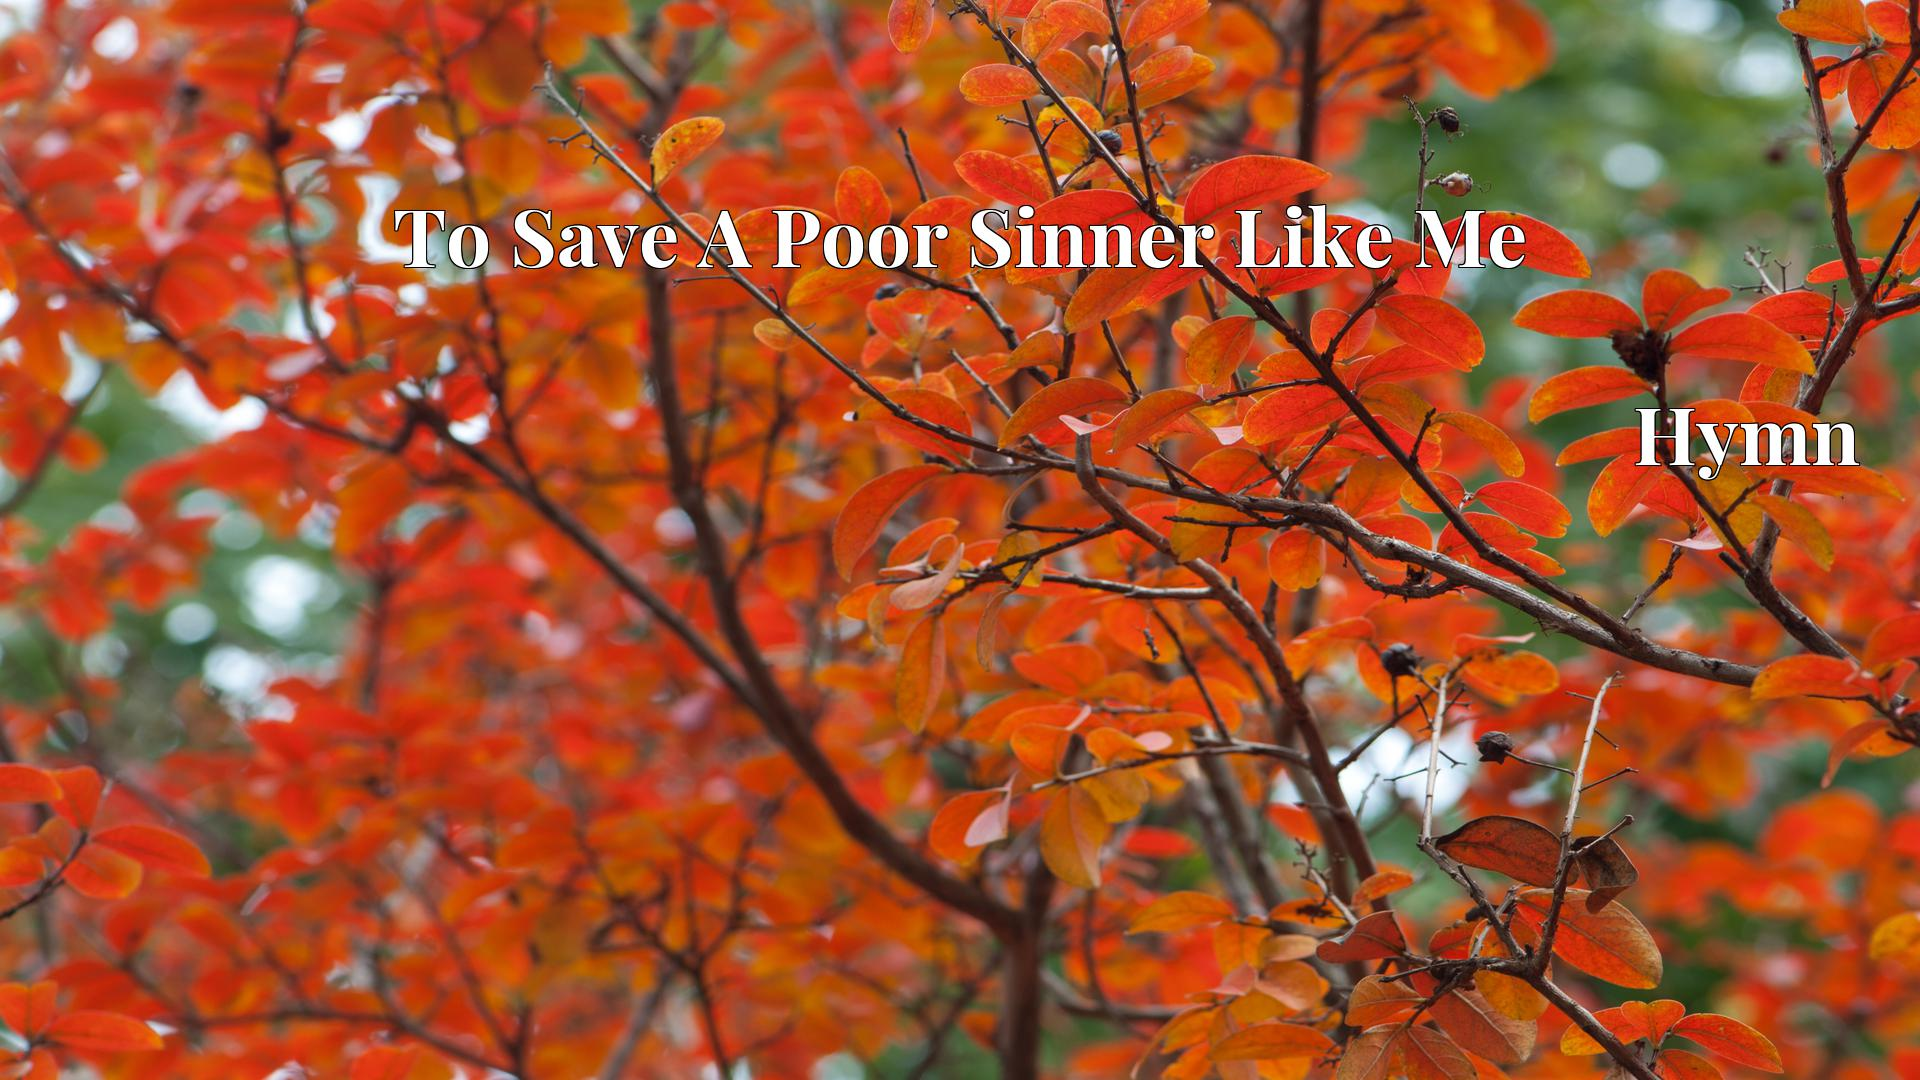 To Save A Poor Sinner Like Me - Hymn